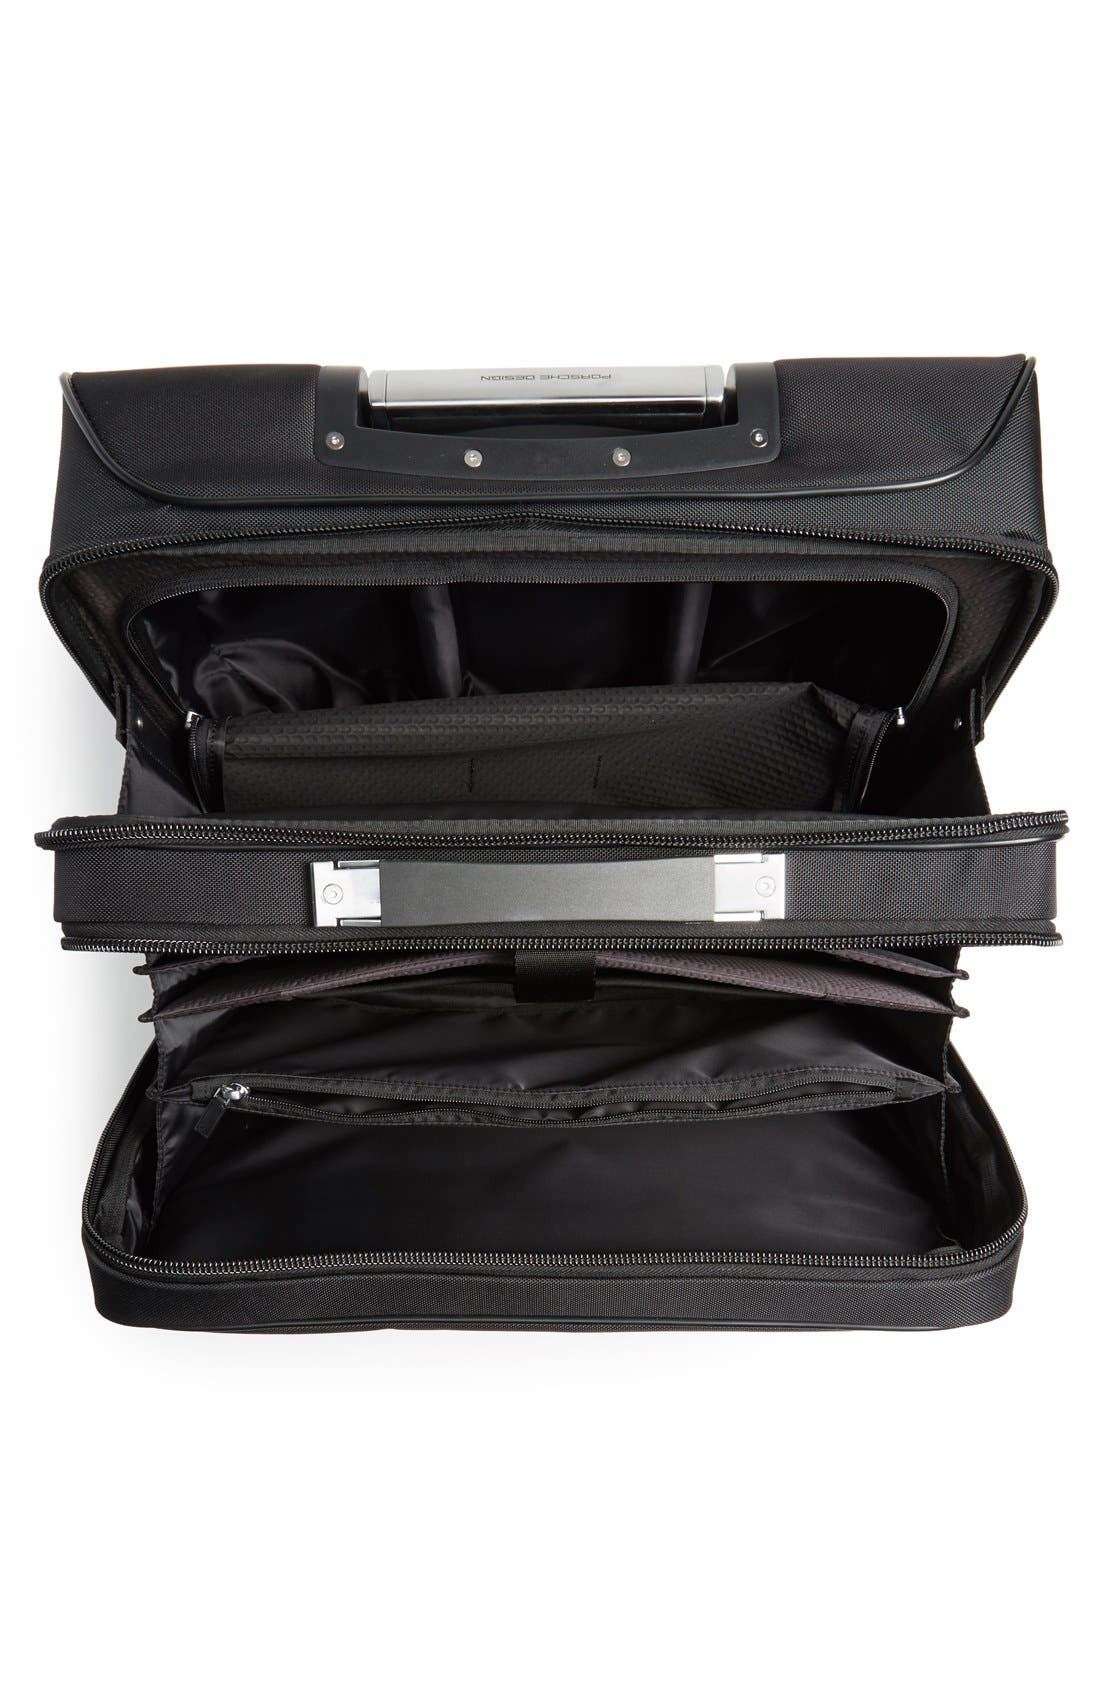 'Roadster 3.0' Wheeled Carry-On,                             Alternate thumbnail 4, color,